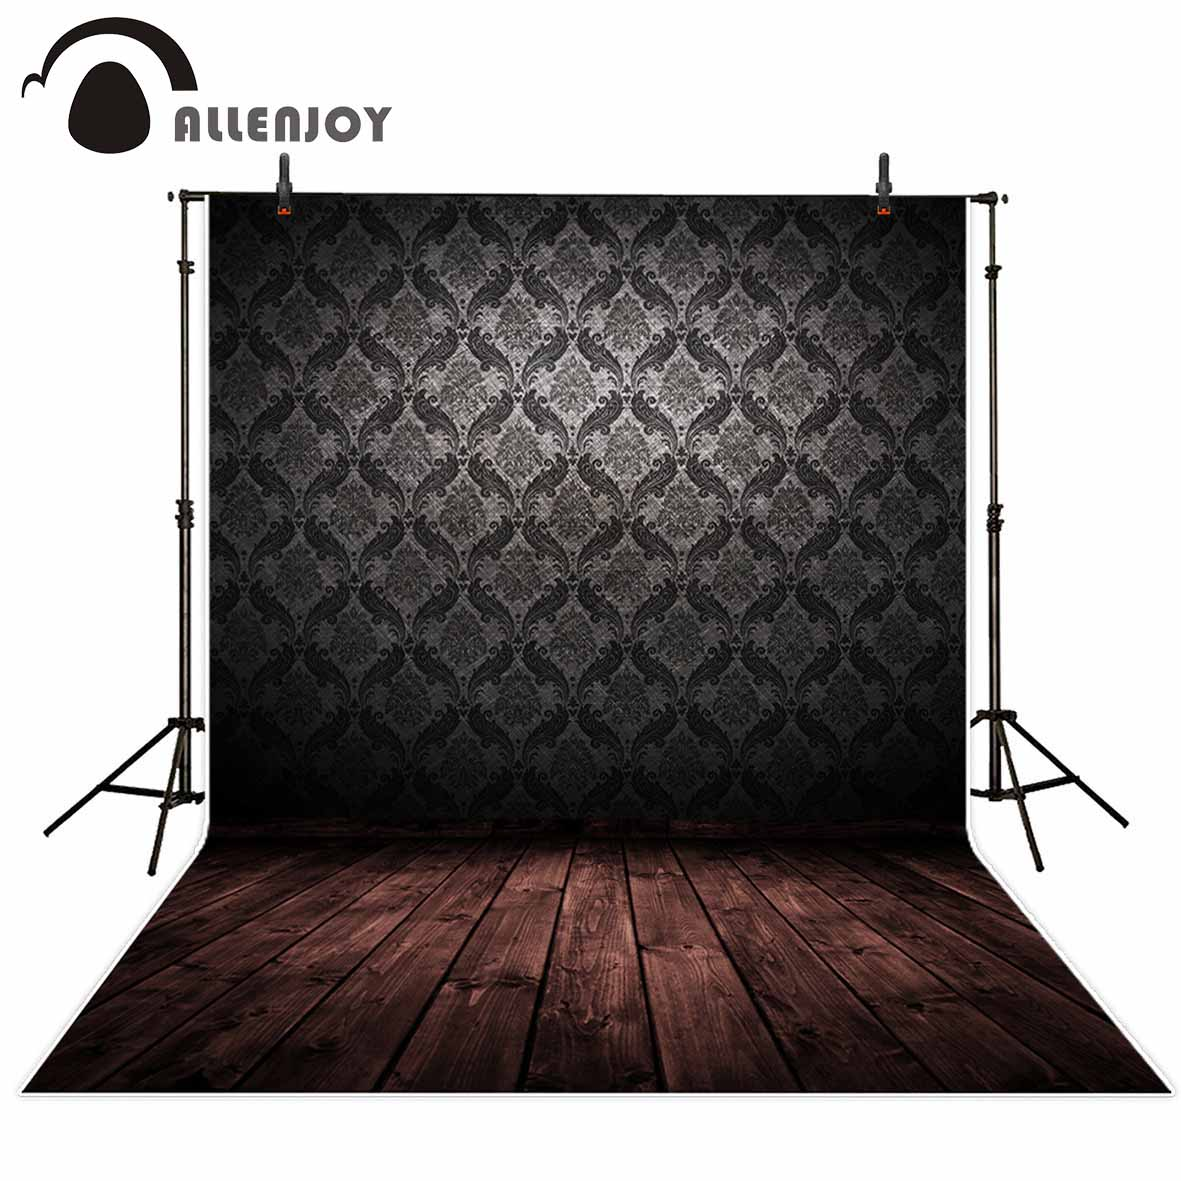 Allenjoy photographic background Wooden pattern decoration damask wallpaper backdrop photocall professional custom new arrivals